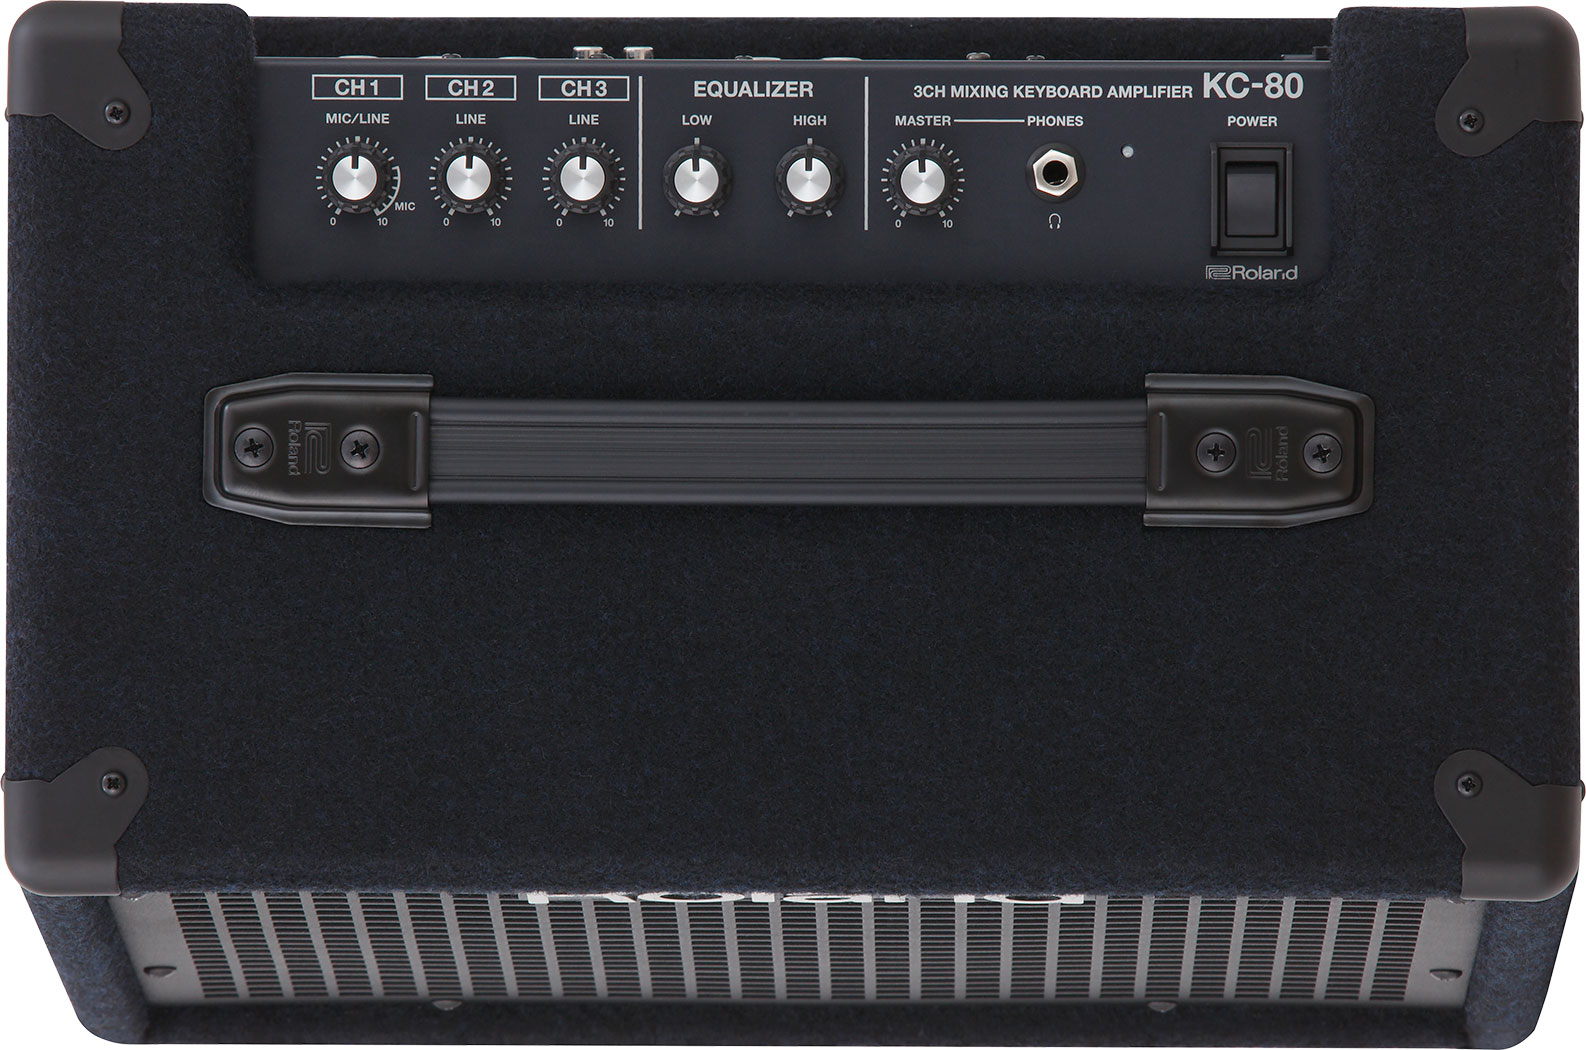 KC-80 Keyboard Amplifier